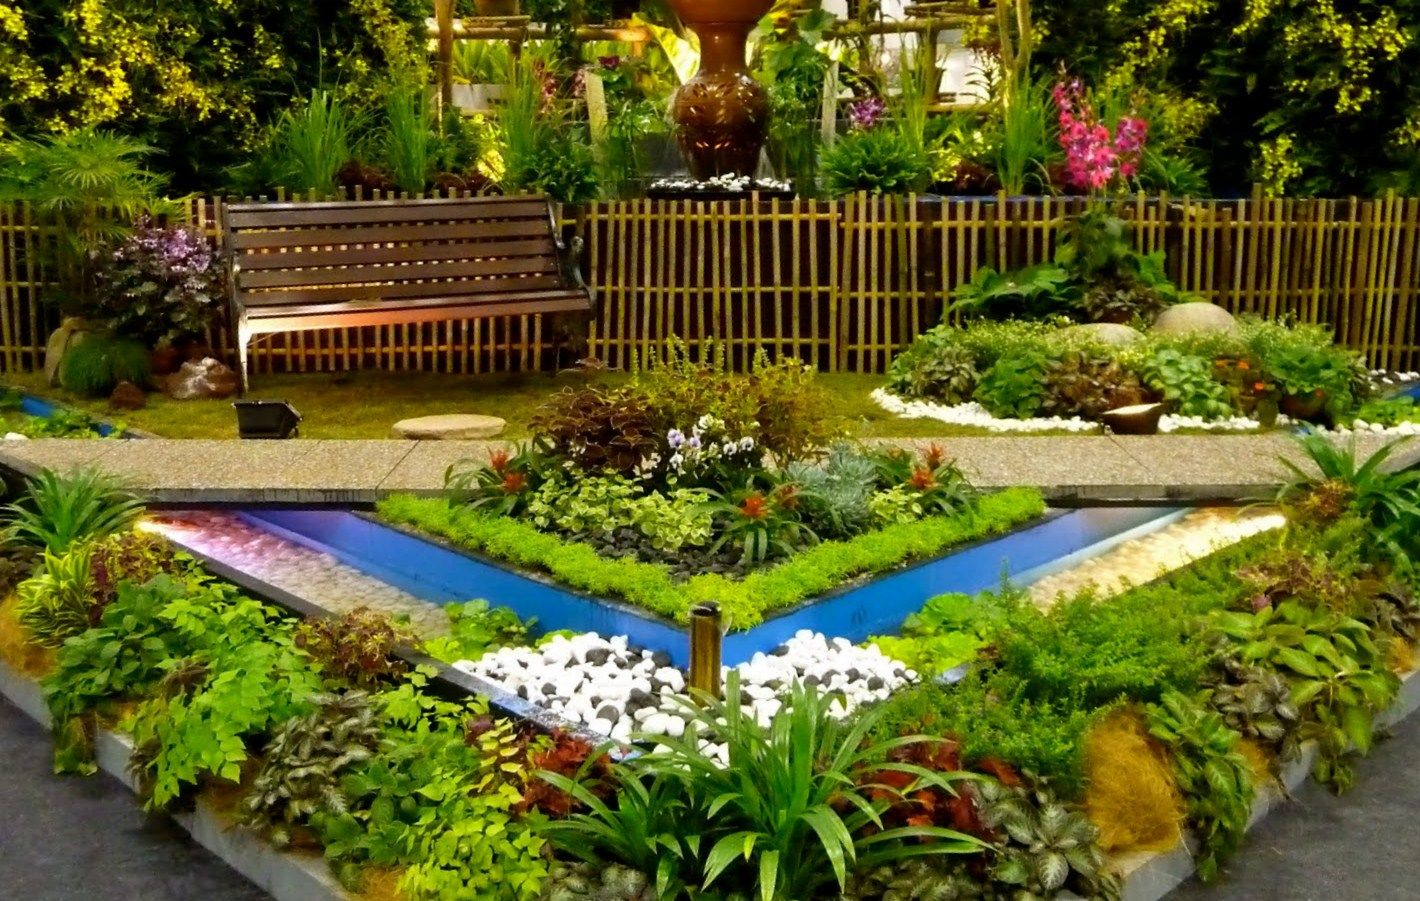 17 Best 1000 images about Garden design on Pinterest Gardens Raised